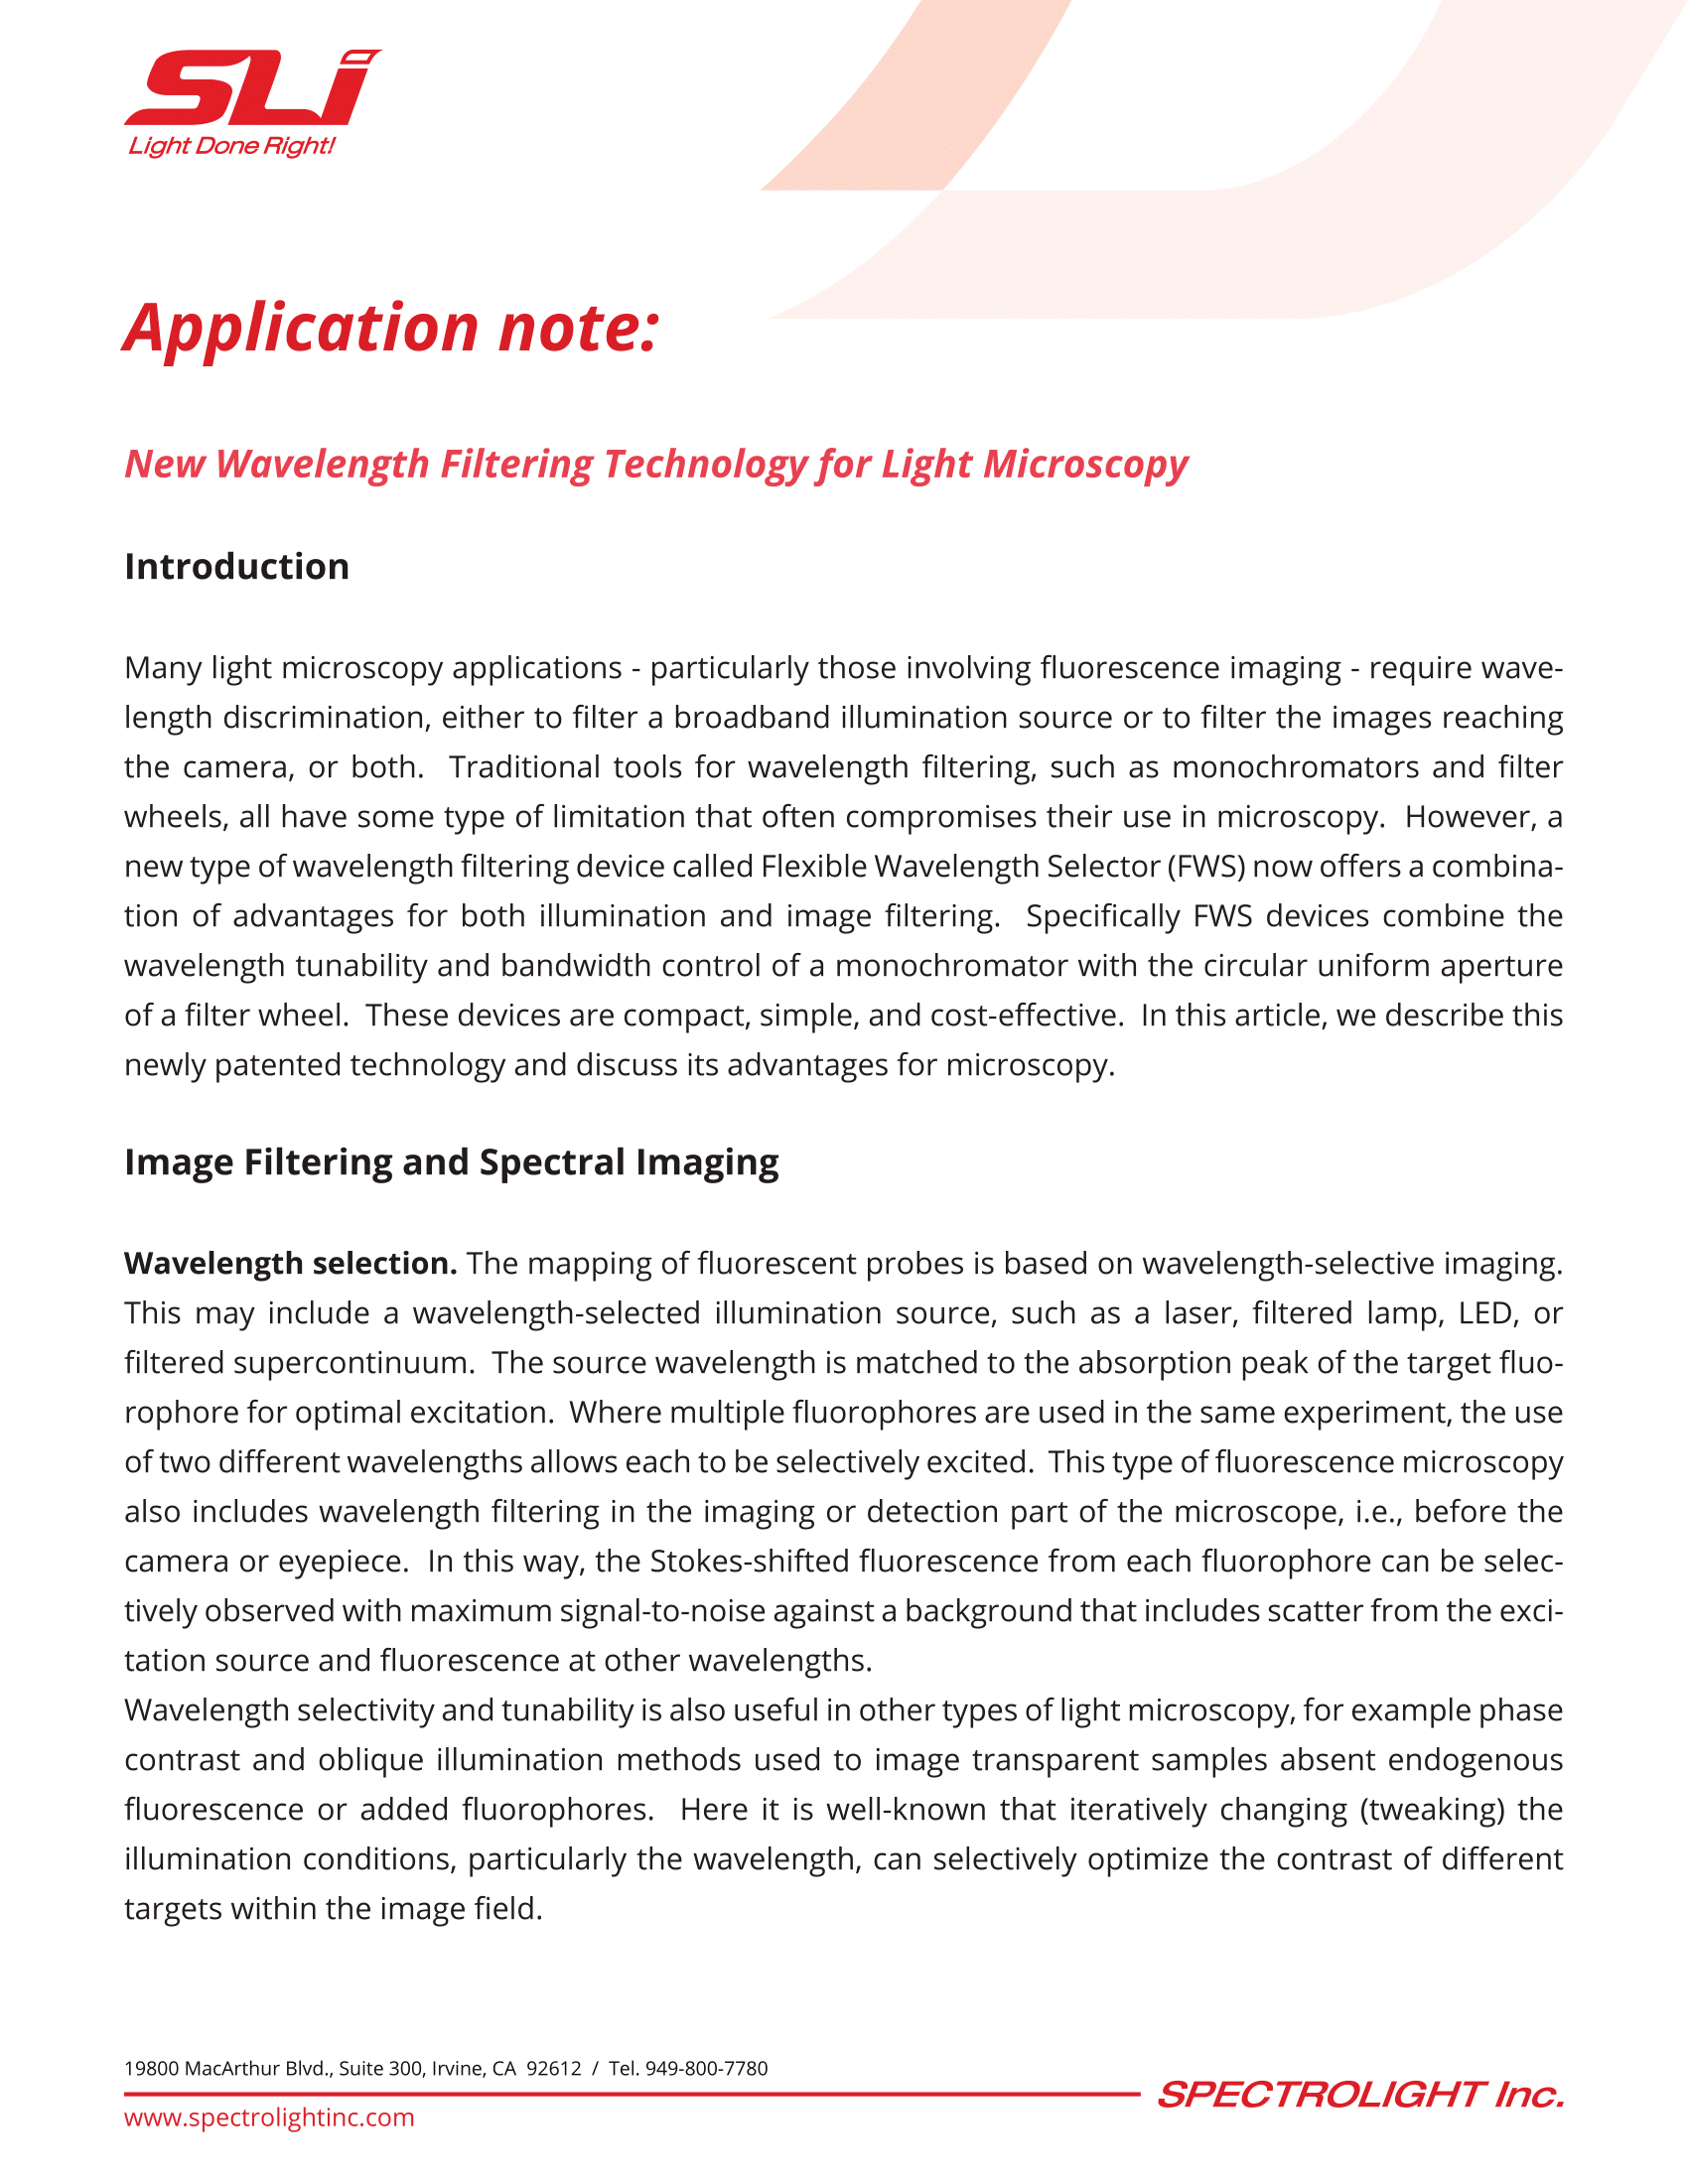 Application Note] New Wavelength Filtering Technology for